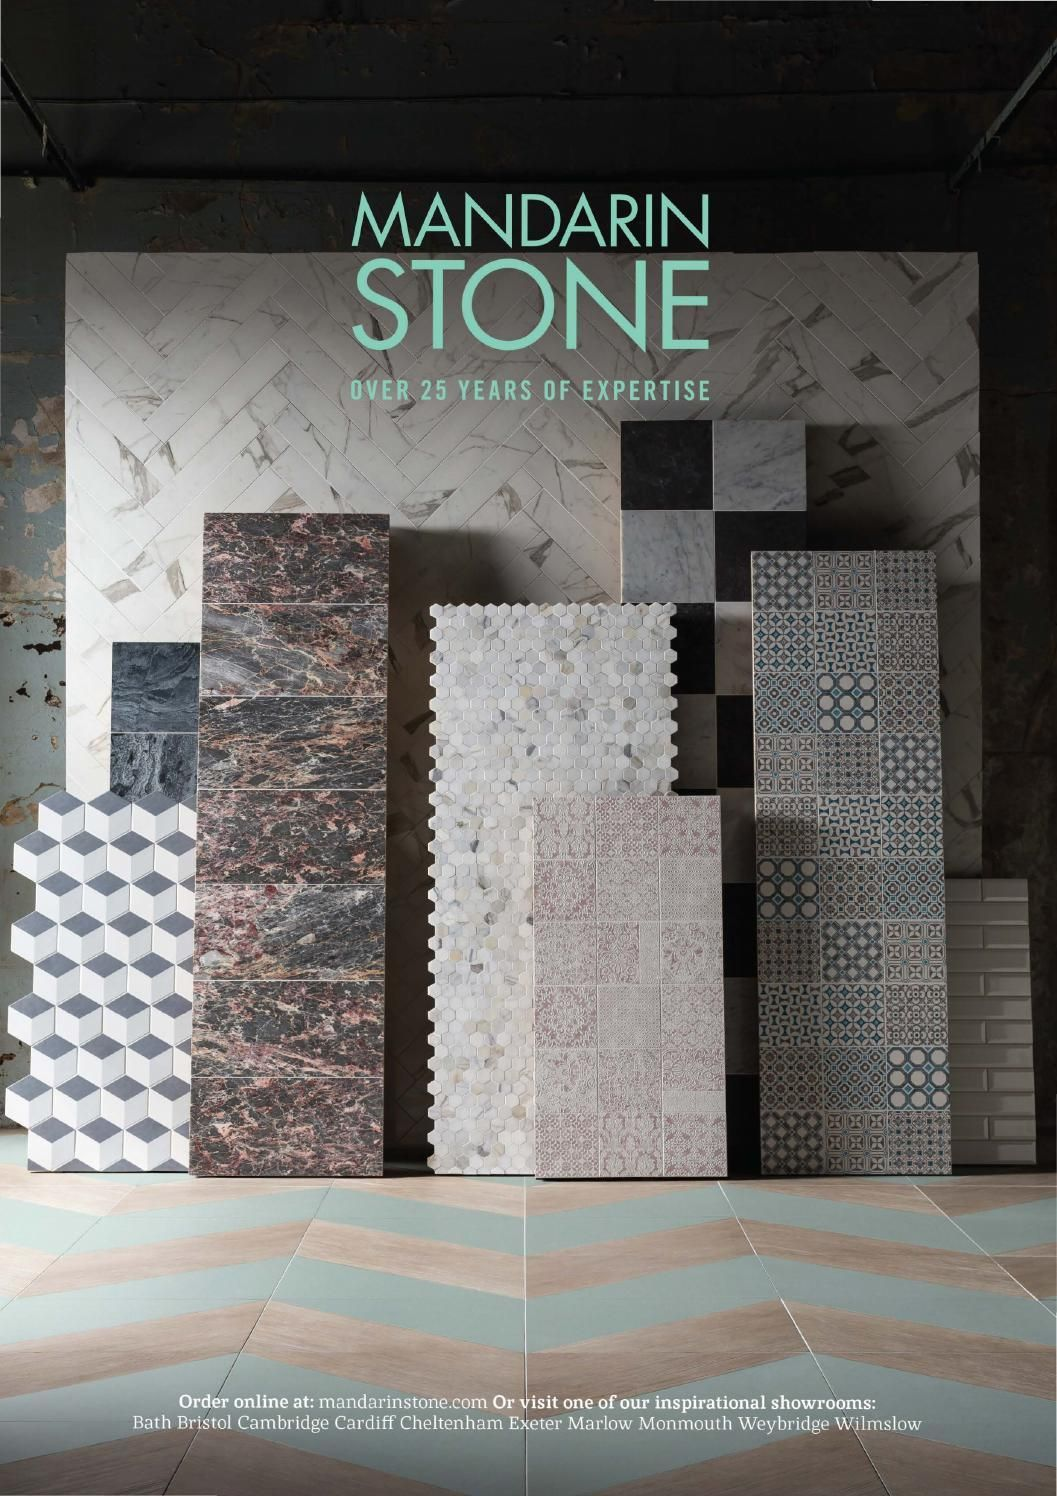 mandarin stone are one of the largest suppliers of natural stone porcealin and decorative tiles and flooring